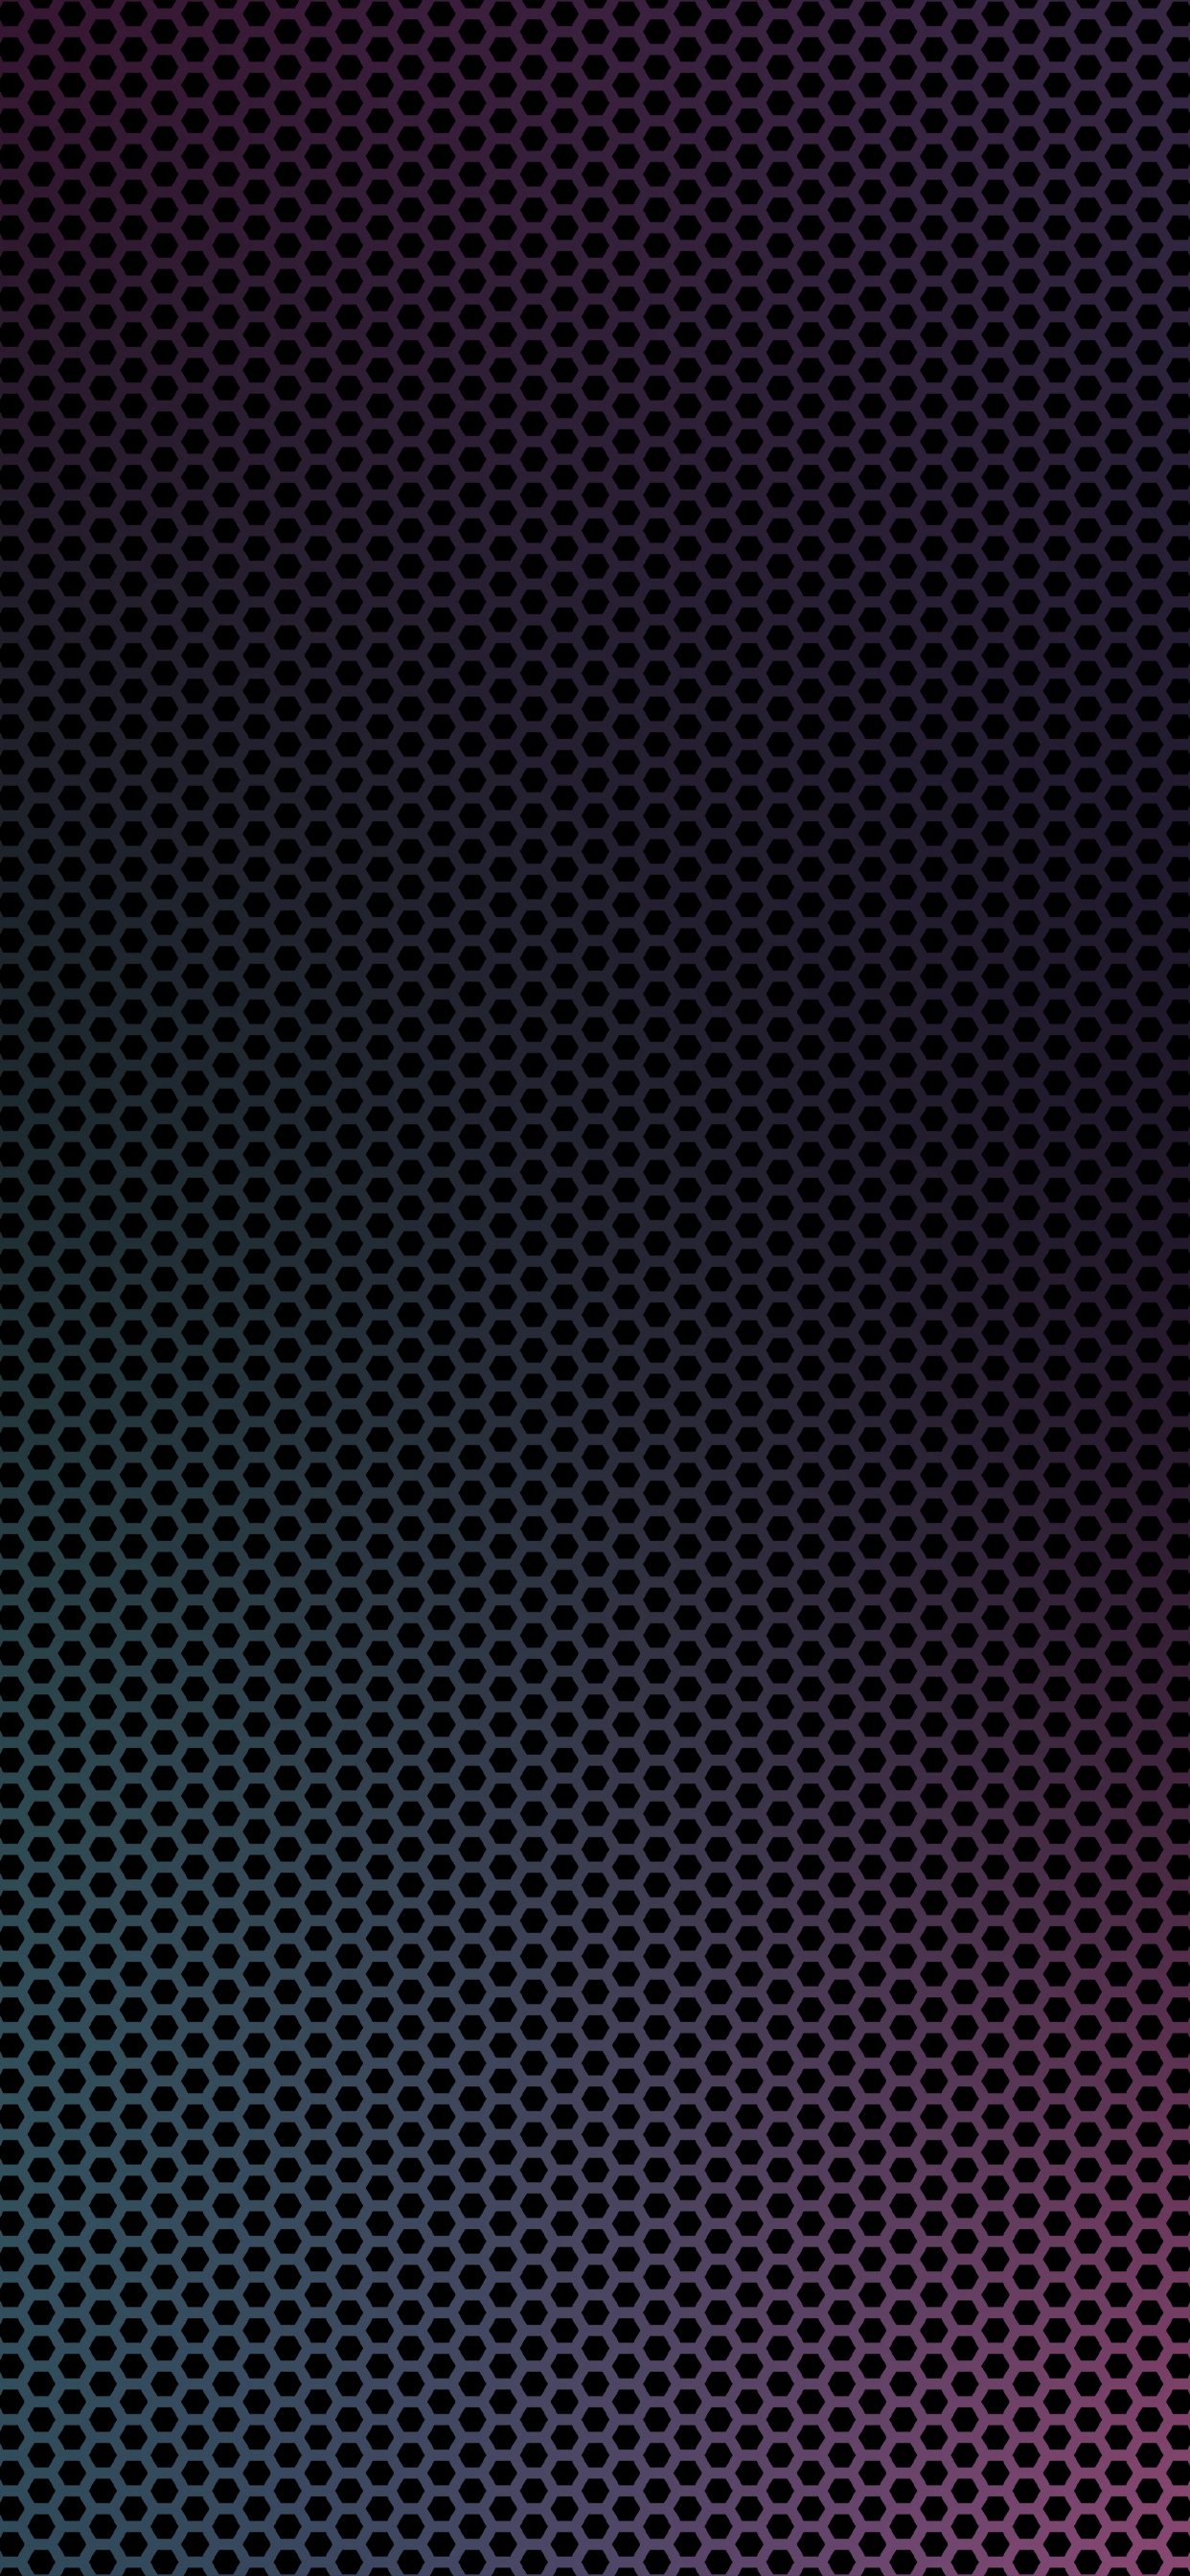 Gradient3 dark pattern iphone wallpaper arthur schrinemacher